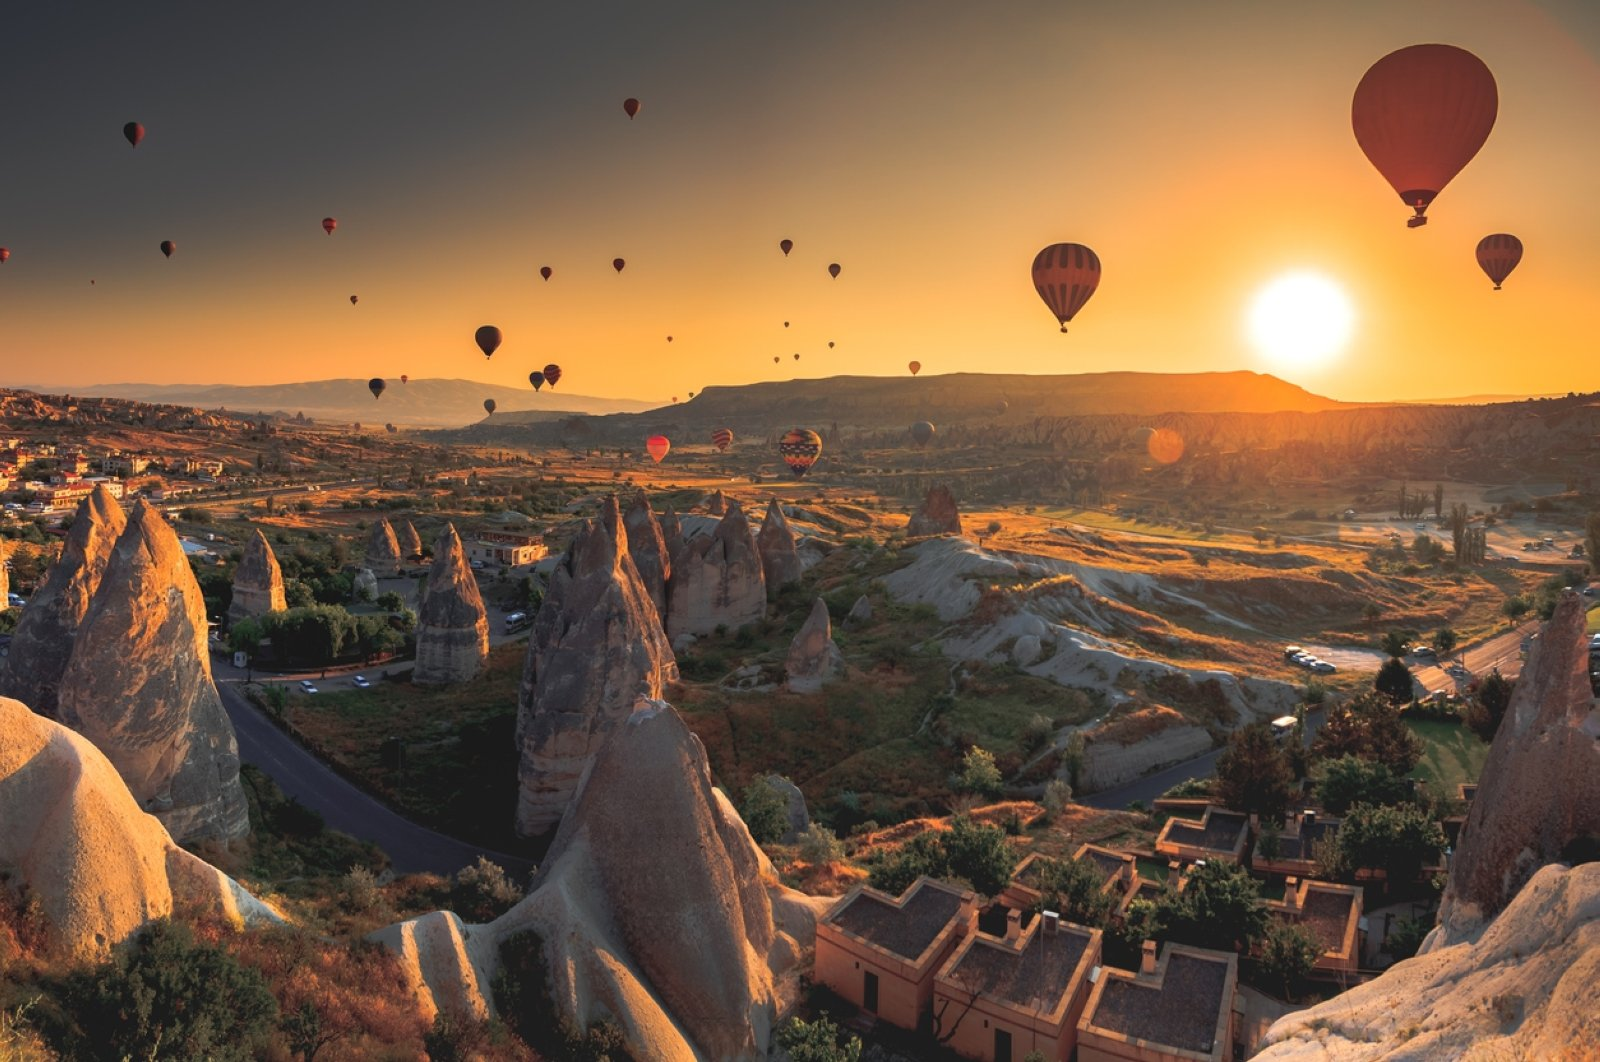 Hot air balloons fly over the Cappadocia region in Nevşehir province, central Turkey, in this undated file photo. (iStock Photo)